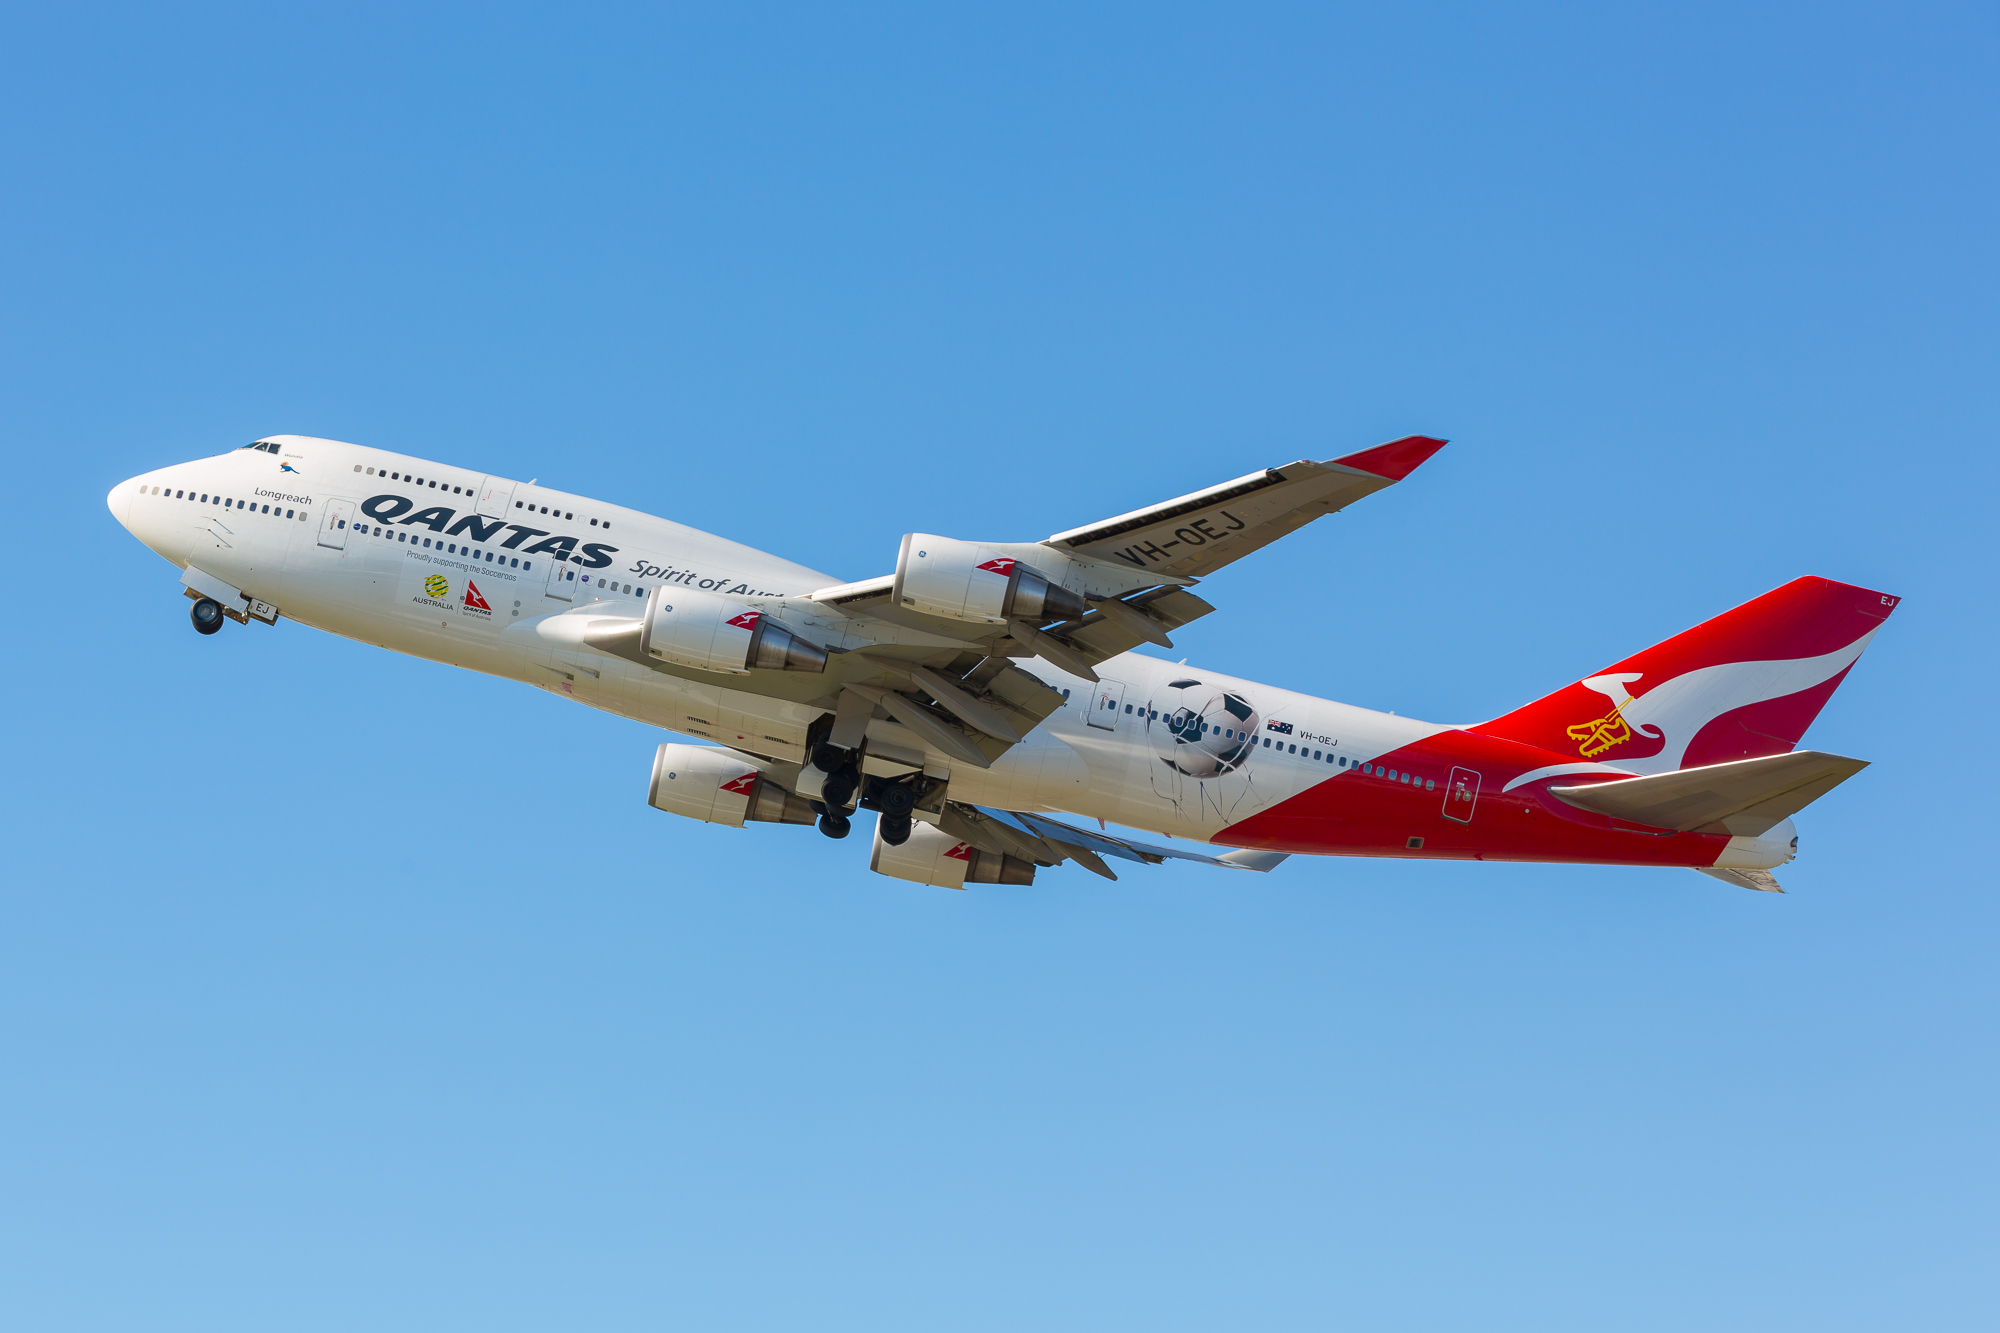 The venerable Boeing 747 on an important mission of World Cup importance. Picture: Qantas